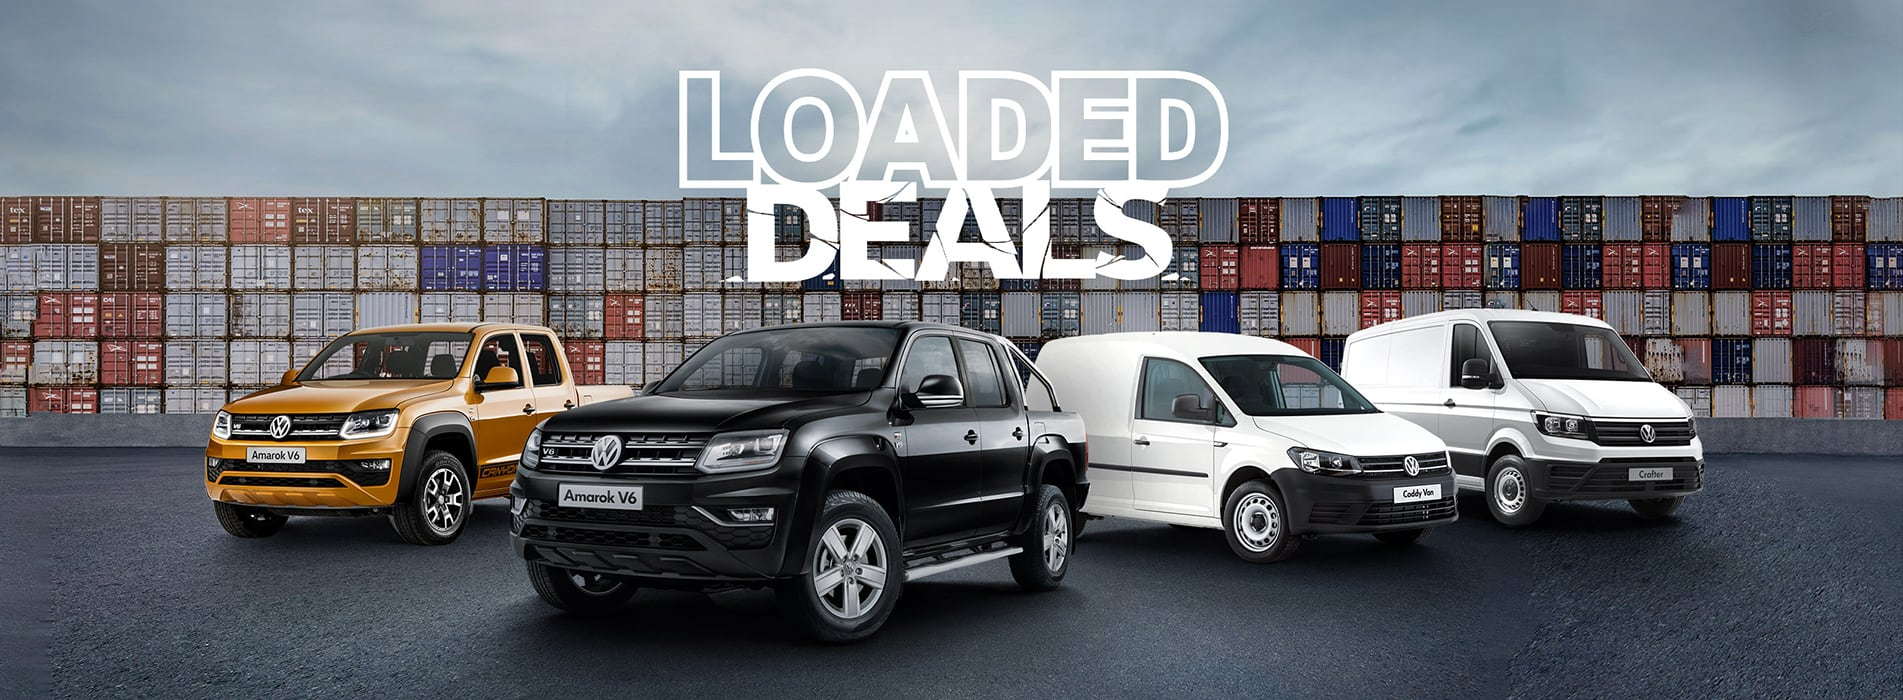 Loaded Deals